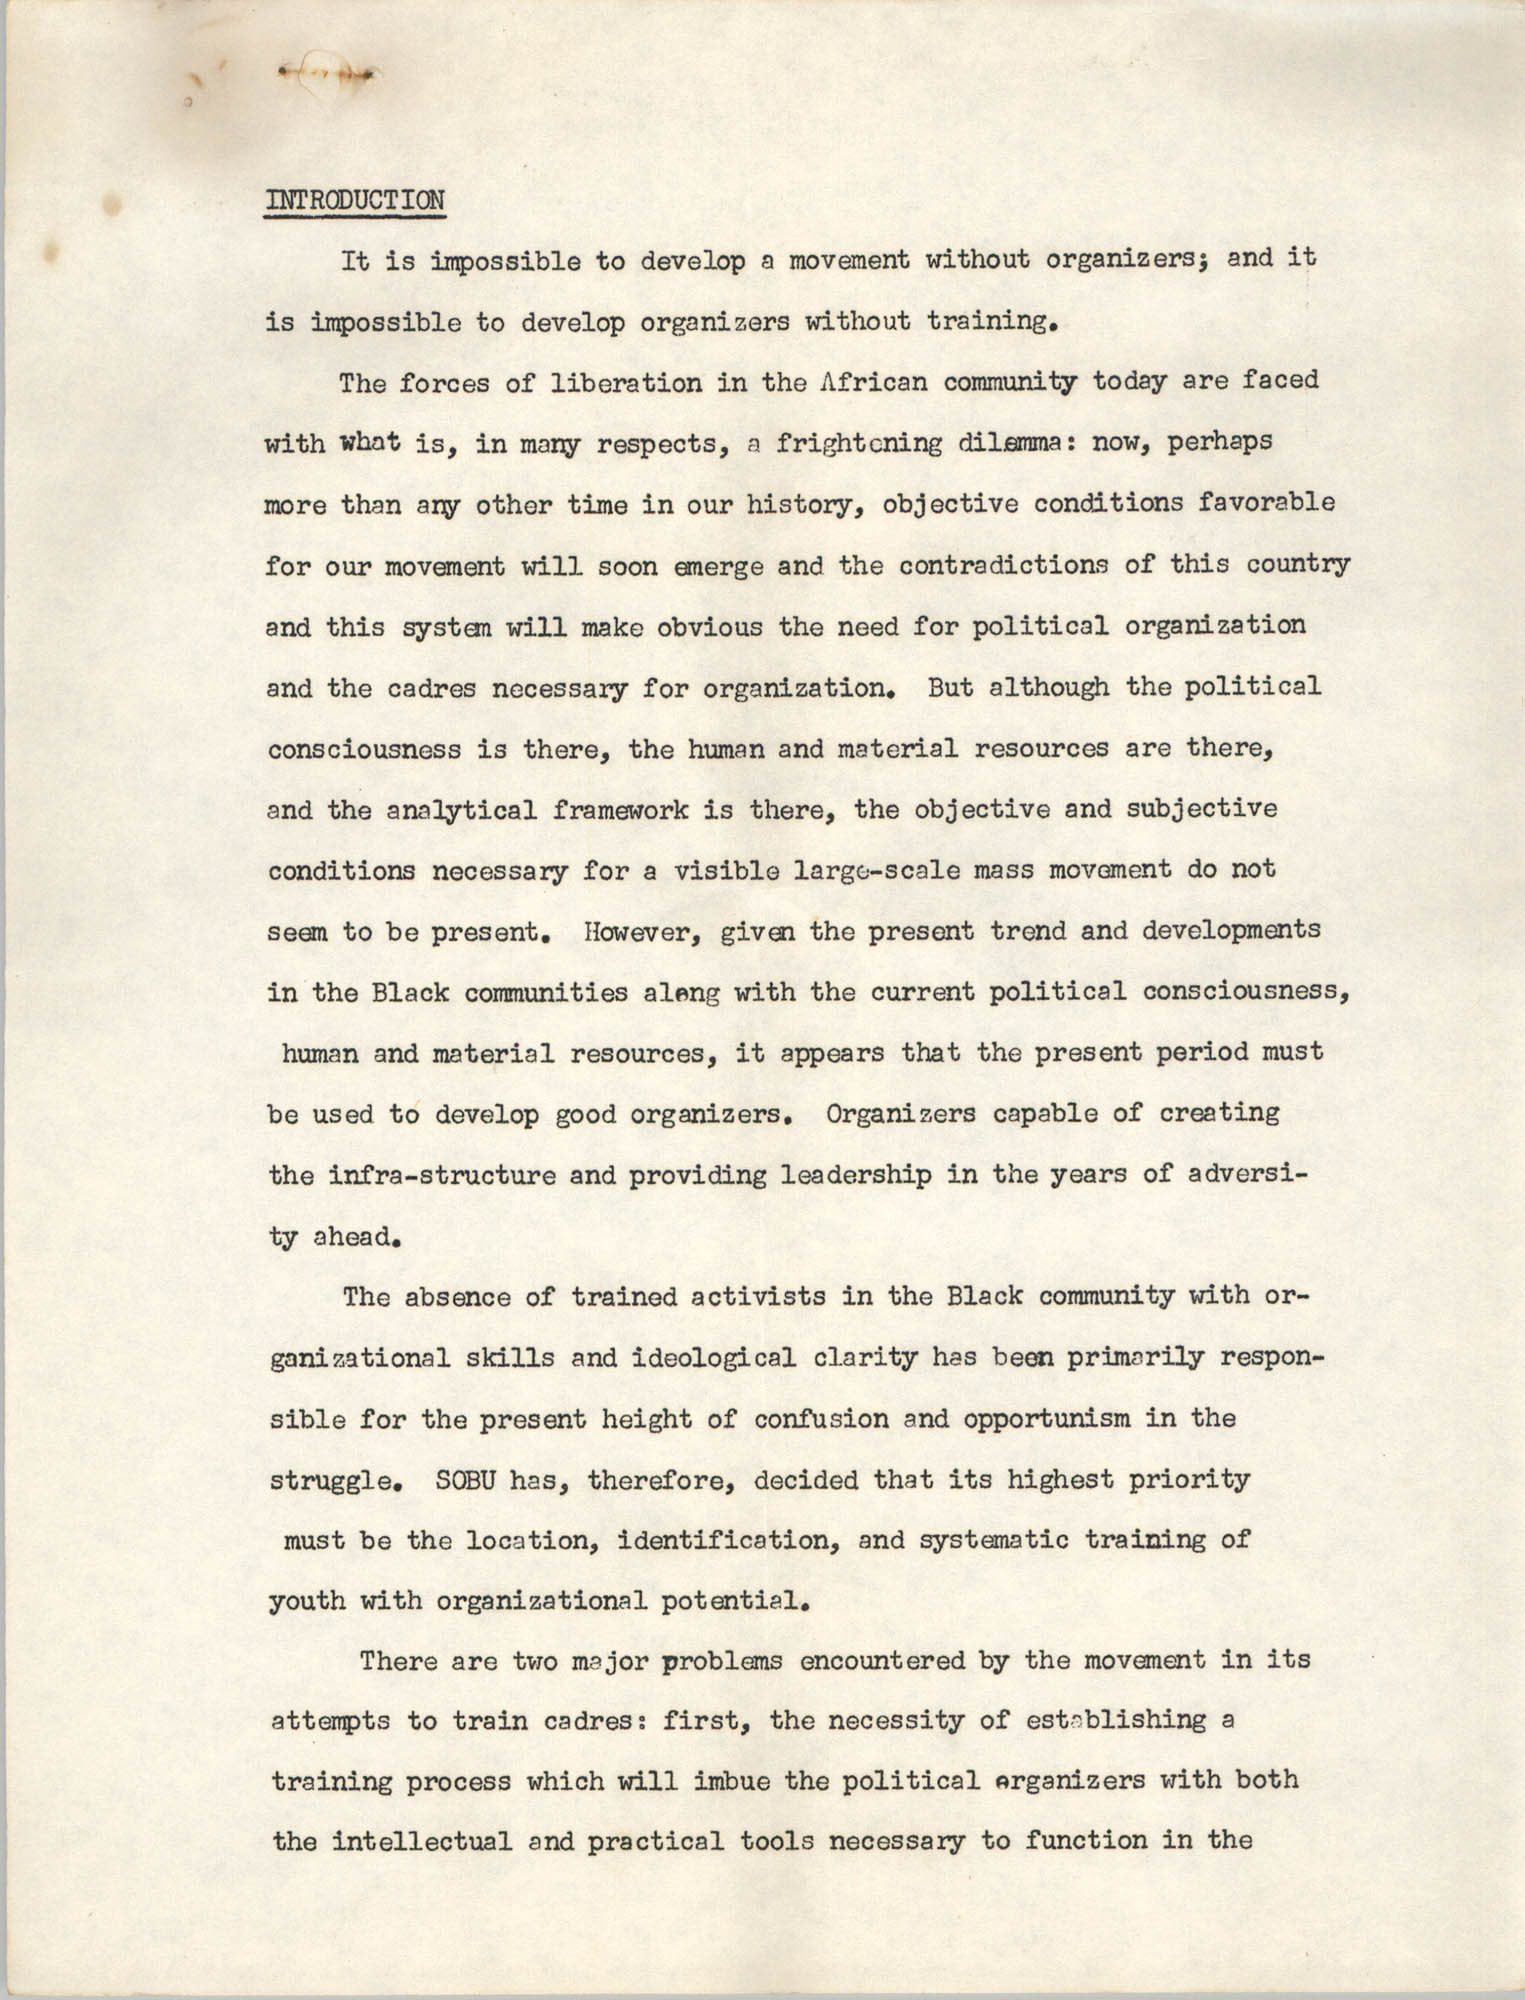 A Proposal for the Development of a Training Institute, Introduction Page 1